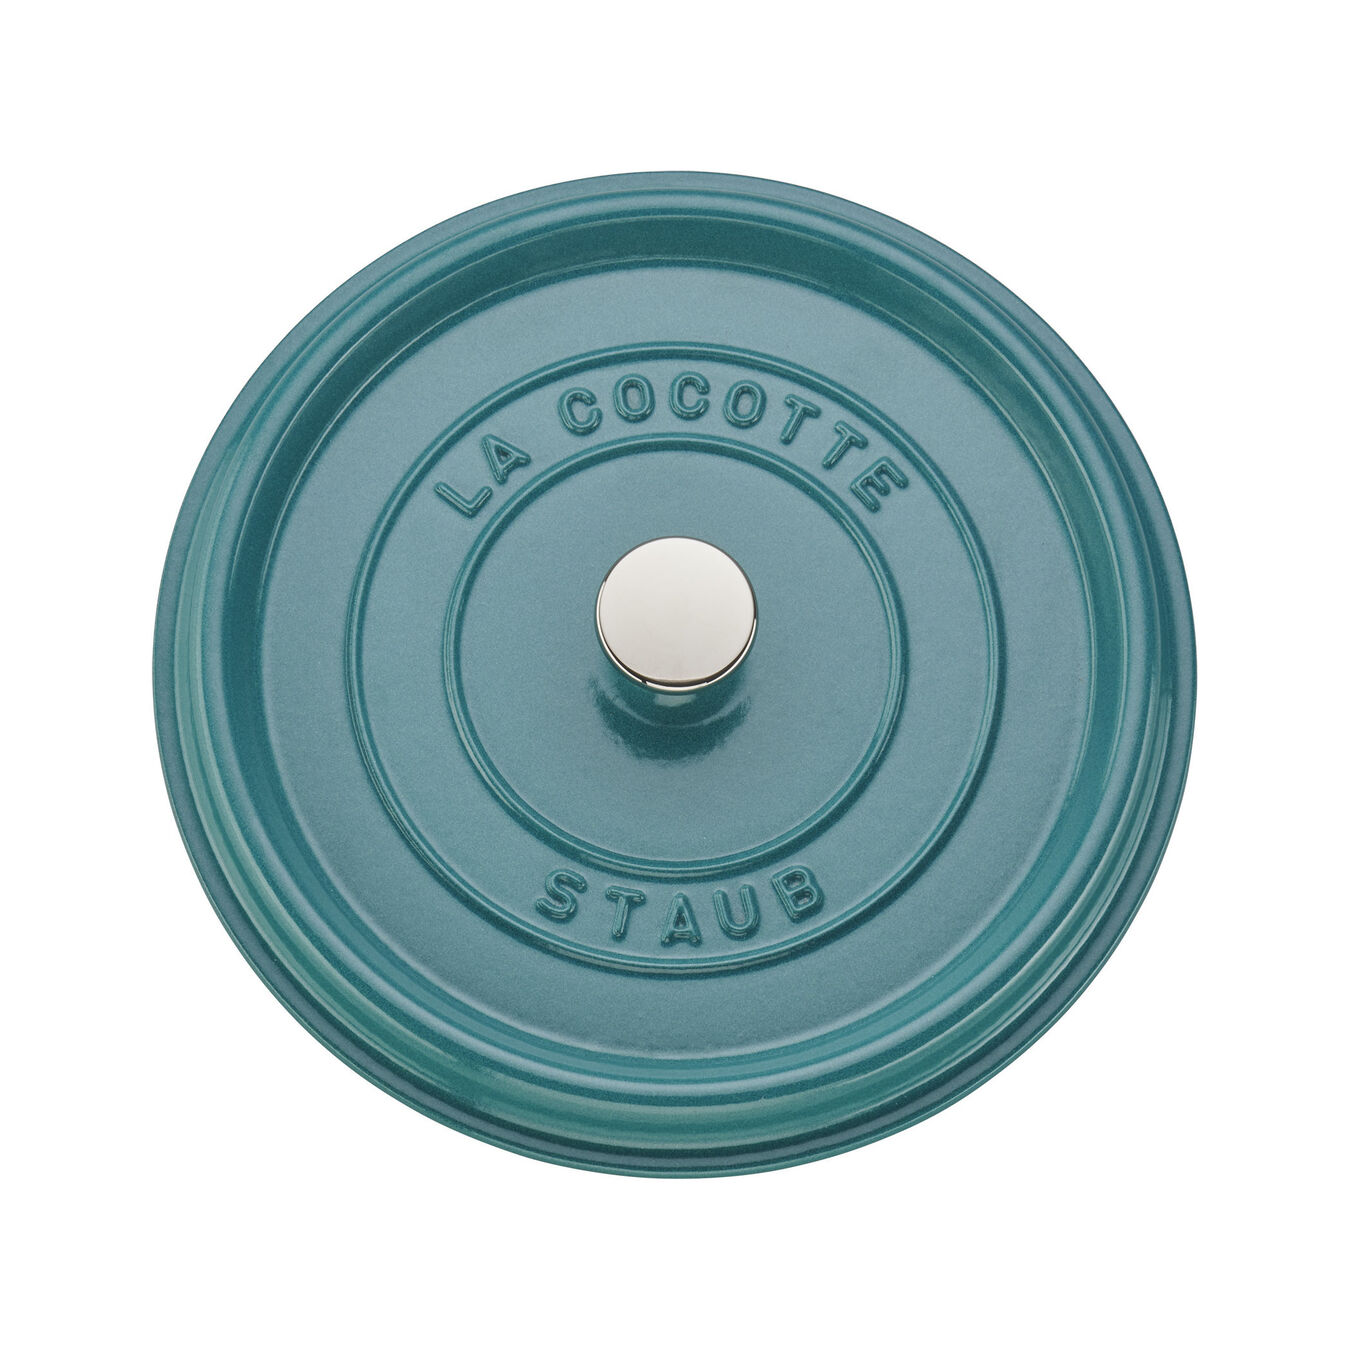 3.75 l Cast iron round Cocotte, Mint-Green,,large 4